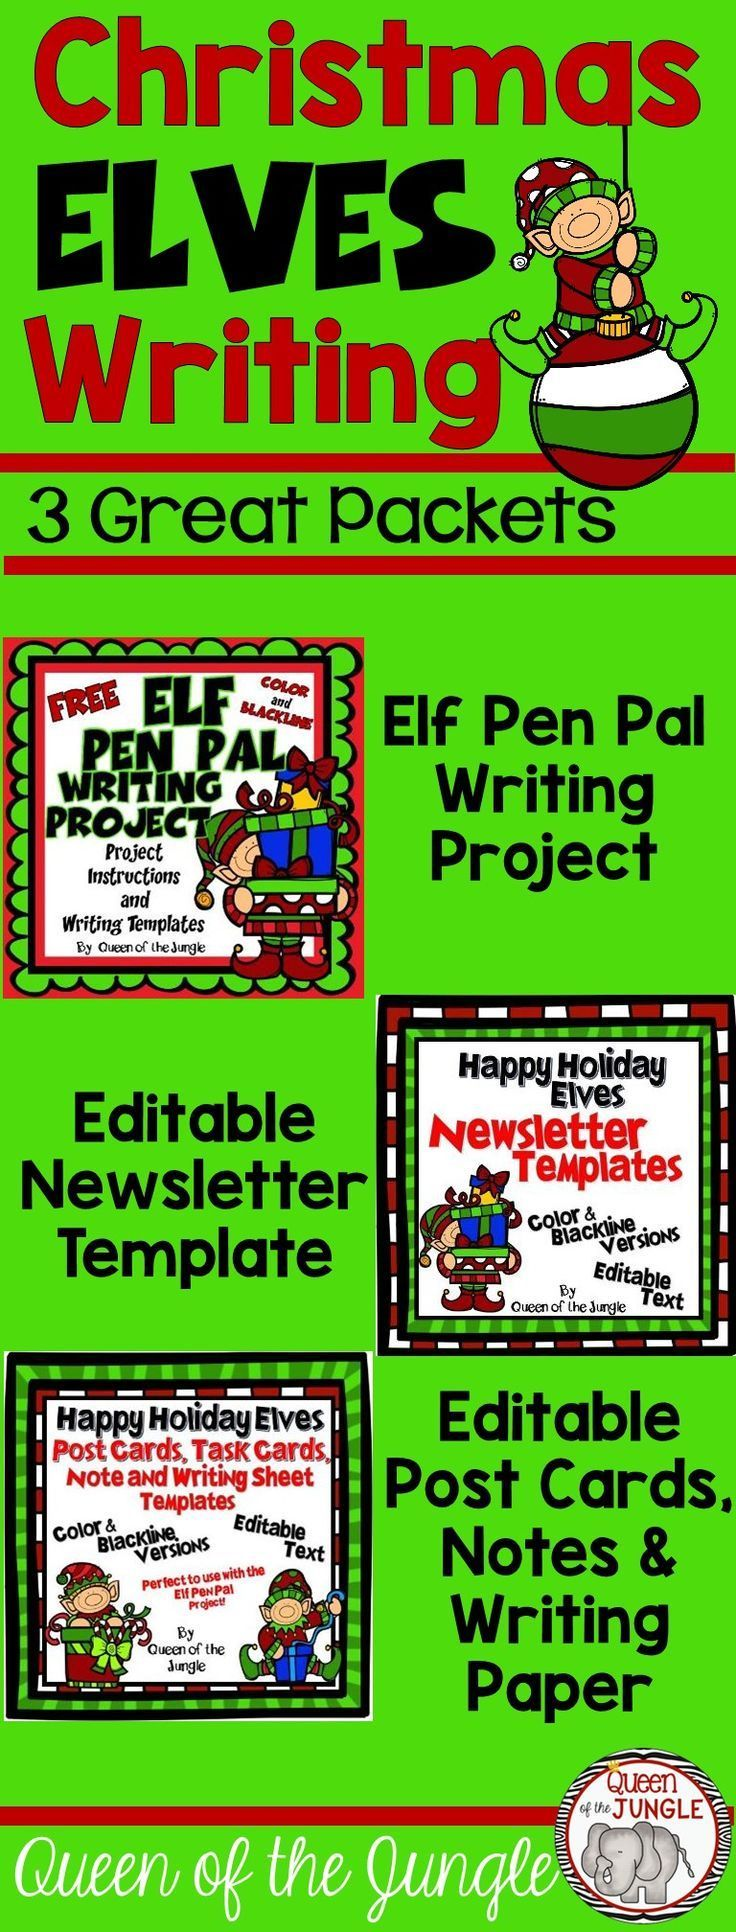 Three Great Writing Packets with a Christmas Elf Theme. Pen Pals, Newsletter Templates and Editable Post Cards, Note Cards and Writing Paper.